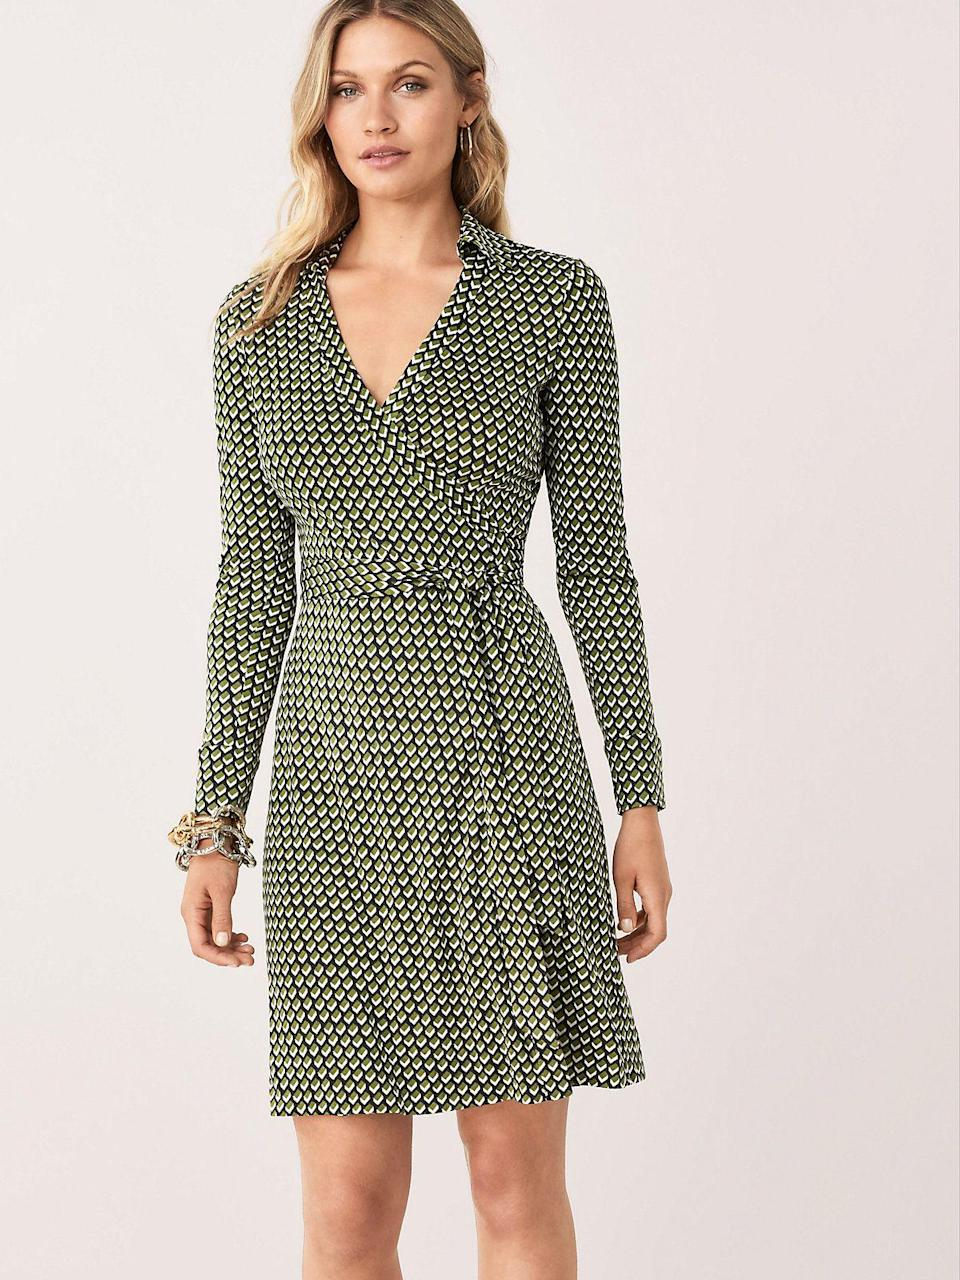 """<p><strong>Diane von Furstenberg</strong></p><p>dvf.com</p><p><strong>$199.20</strong></p><p><a href=""""https://go.redirectingat.com?id=74968X1596630&url=https%3A%2F%2Fwww.dvf.com%2Fnew-jeanne-two-silk-jersey-wrap-dress%2F10334DVF.html&sref=http%3A%2F%2Fwww.townandcountrymag.com%2Fstyle%2Ffashion-trends%2Fg26522706%2Fbest-dresses-for-older-women%2F"""" rel=""""nofollow noopener"""" target=""""_blank"""" data-ylk=""""slk:Shop Now"""" class=""""link rapid-noclick-resp"""">Shop Now</a></p><p>There's a reason that DVF's printed wrap dresses became an icon: they're flattering on positively everyone. </p>"""